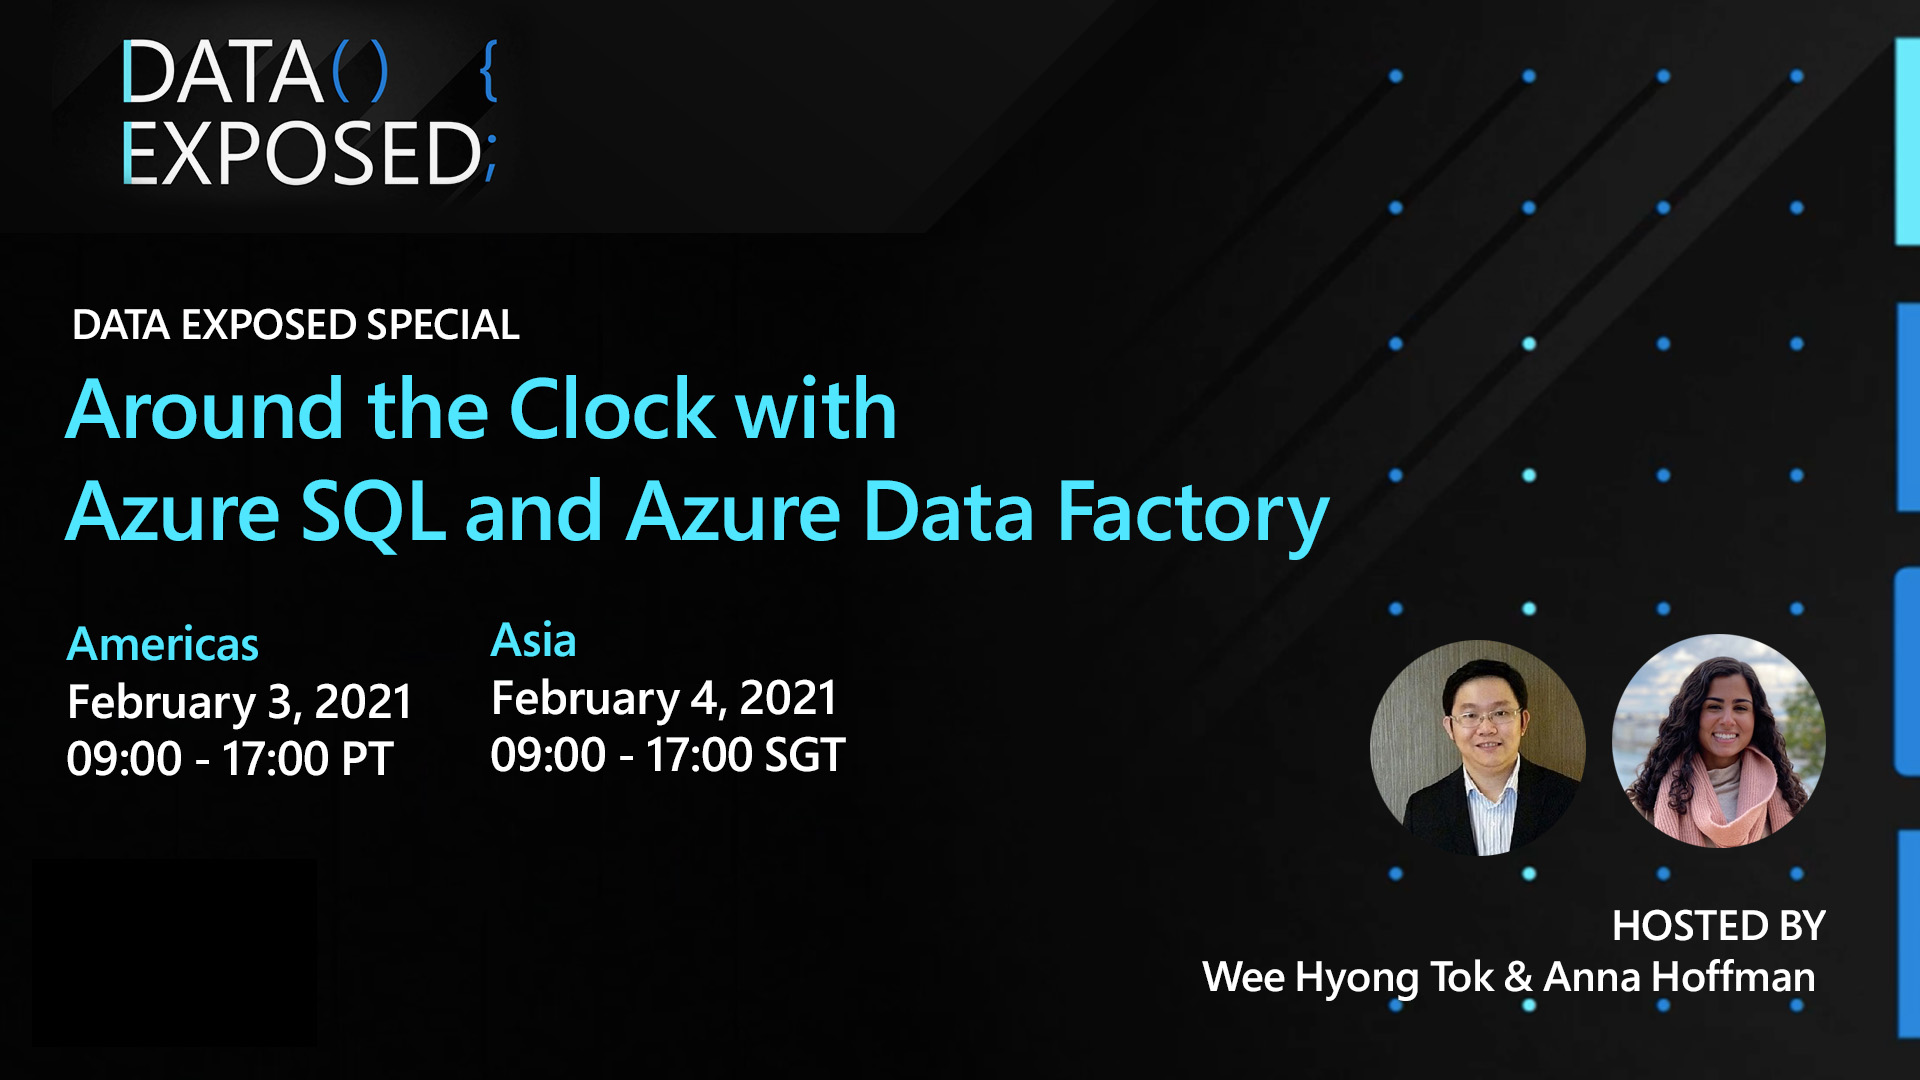 Around the clock with Azure SQL and Azure Data Factory - Microsoft SQL Server Blog